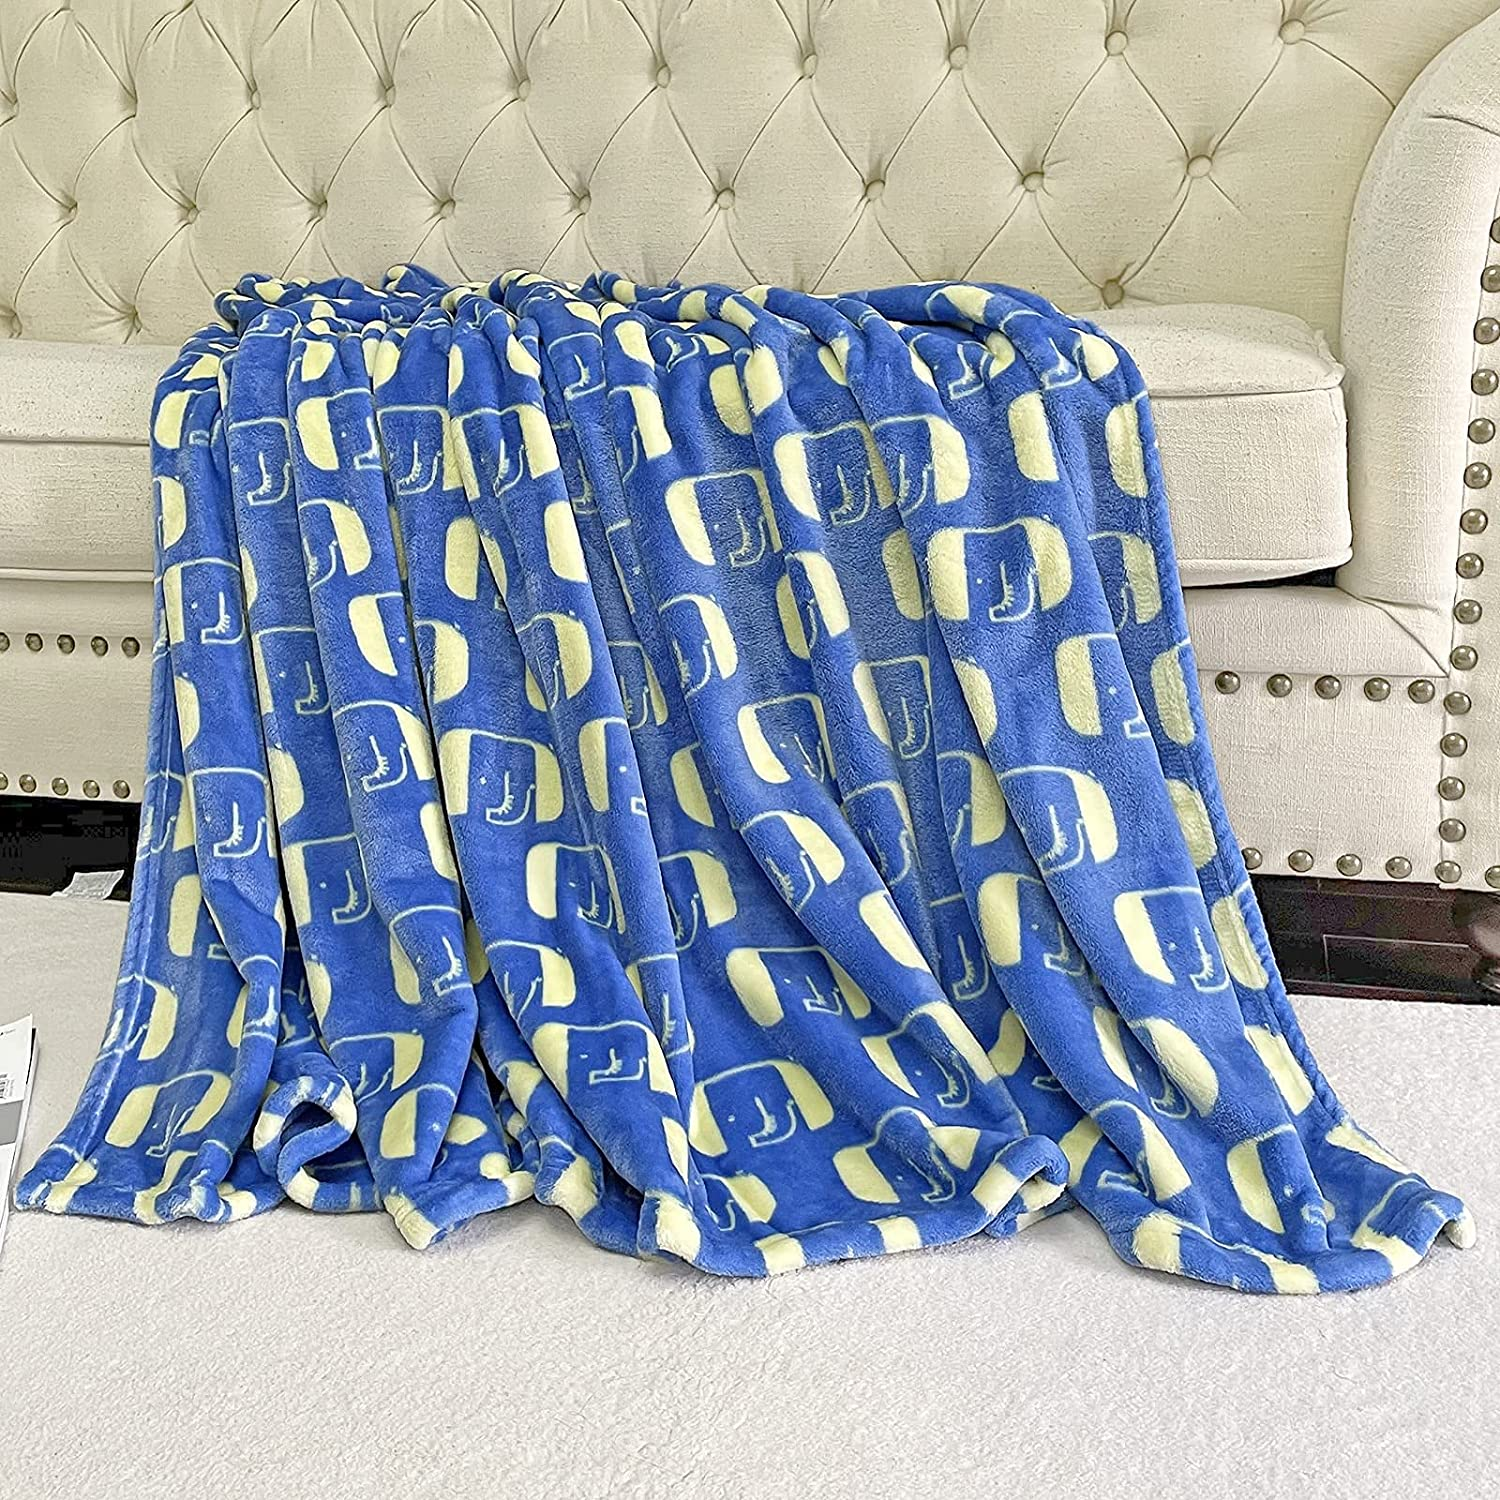 BT.WA Kids Blanket Flannel Throw for Soft Baby Cheap mail order sales T Max 88% OFF